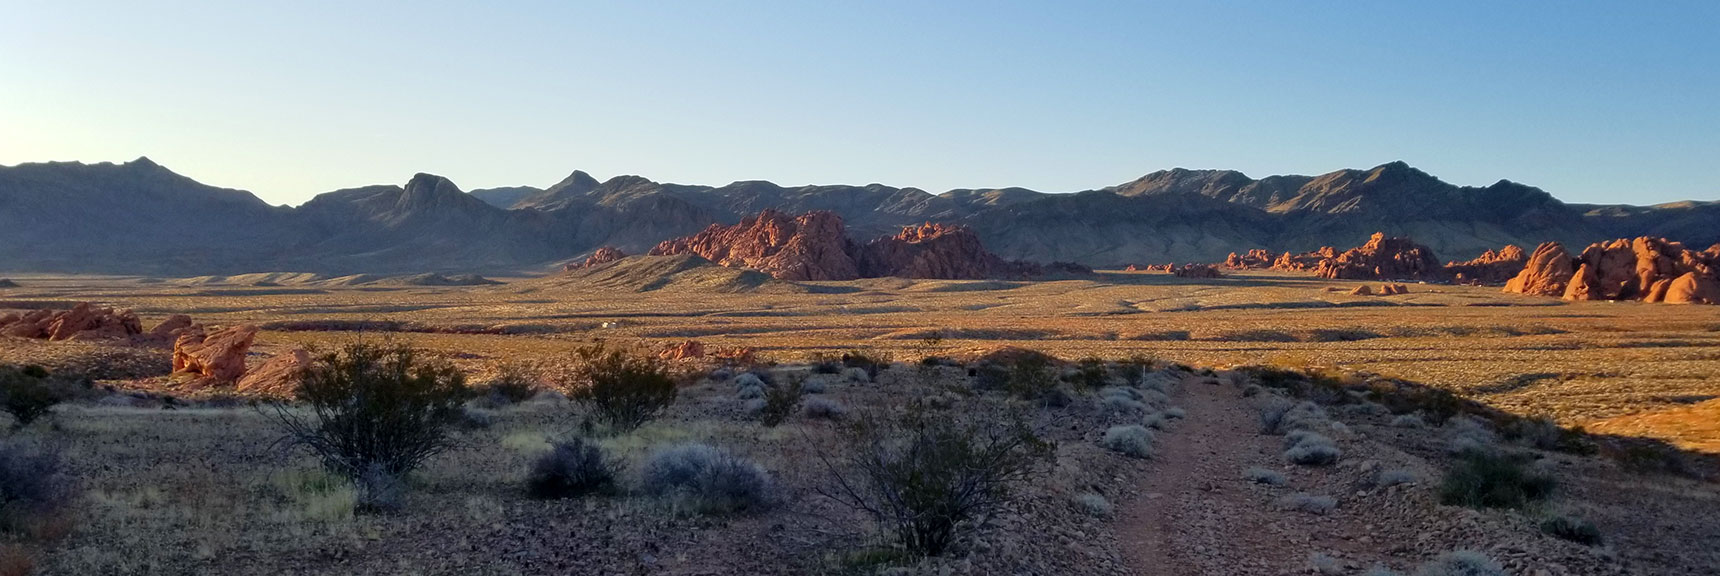 Looking Back Toward Atlatl Rock from the Pass at Prospect Trail in Valley of Fire State Park, Nevada